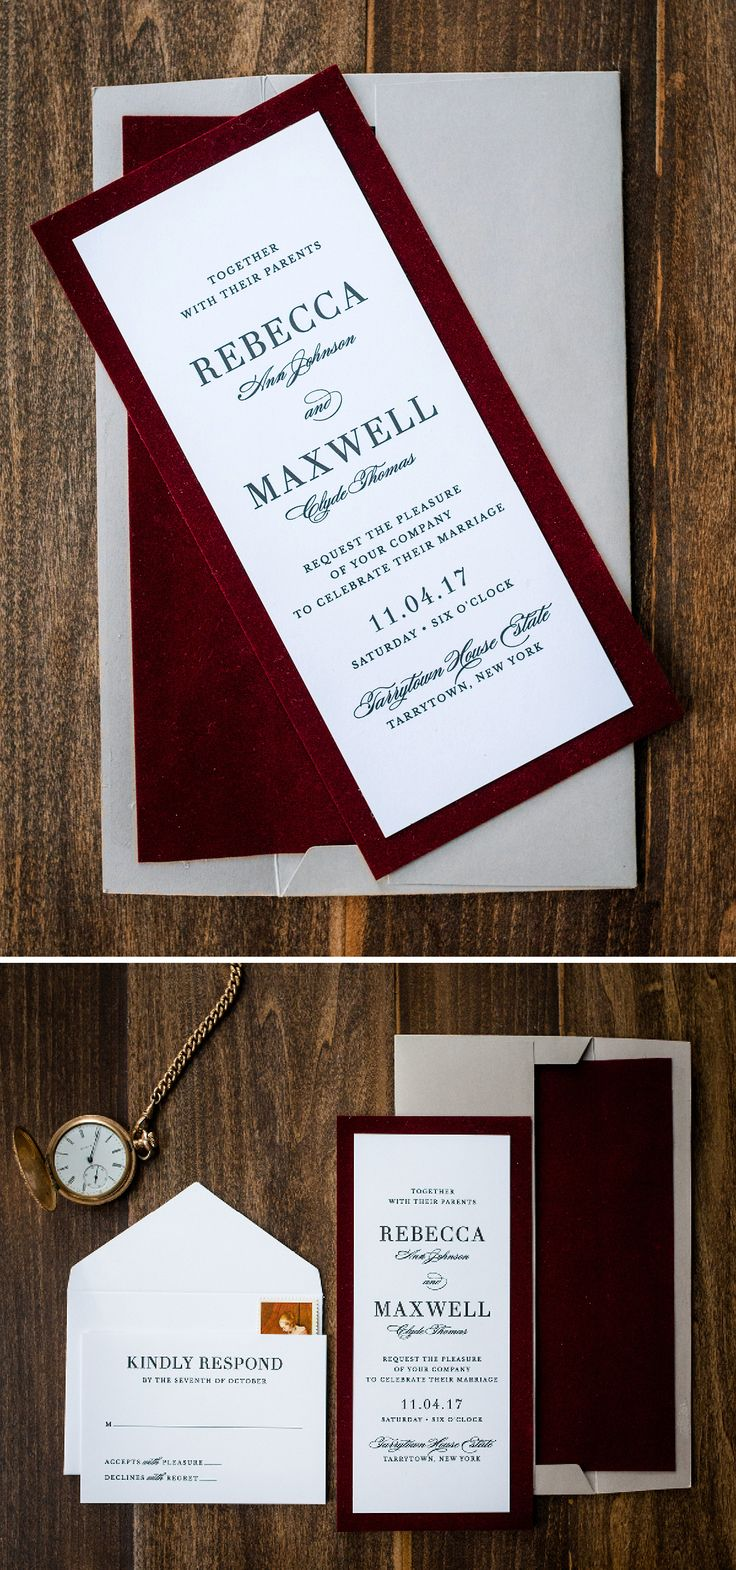 Unique Velvet Wedding Invitation by Penn & Paperie. Designed in a red wine color palette and skinny vertical layout.